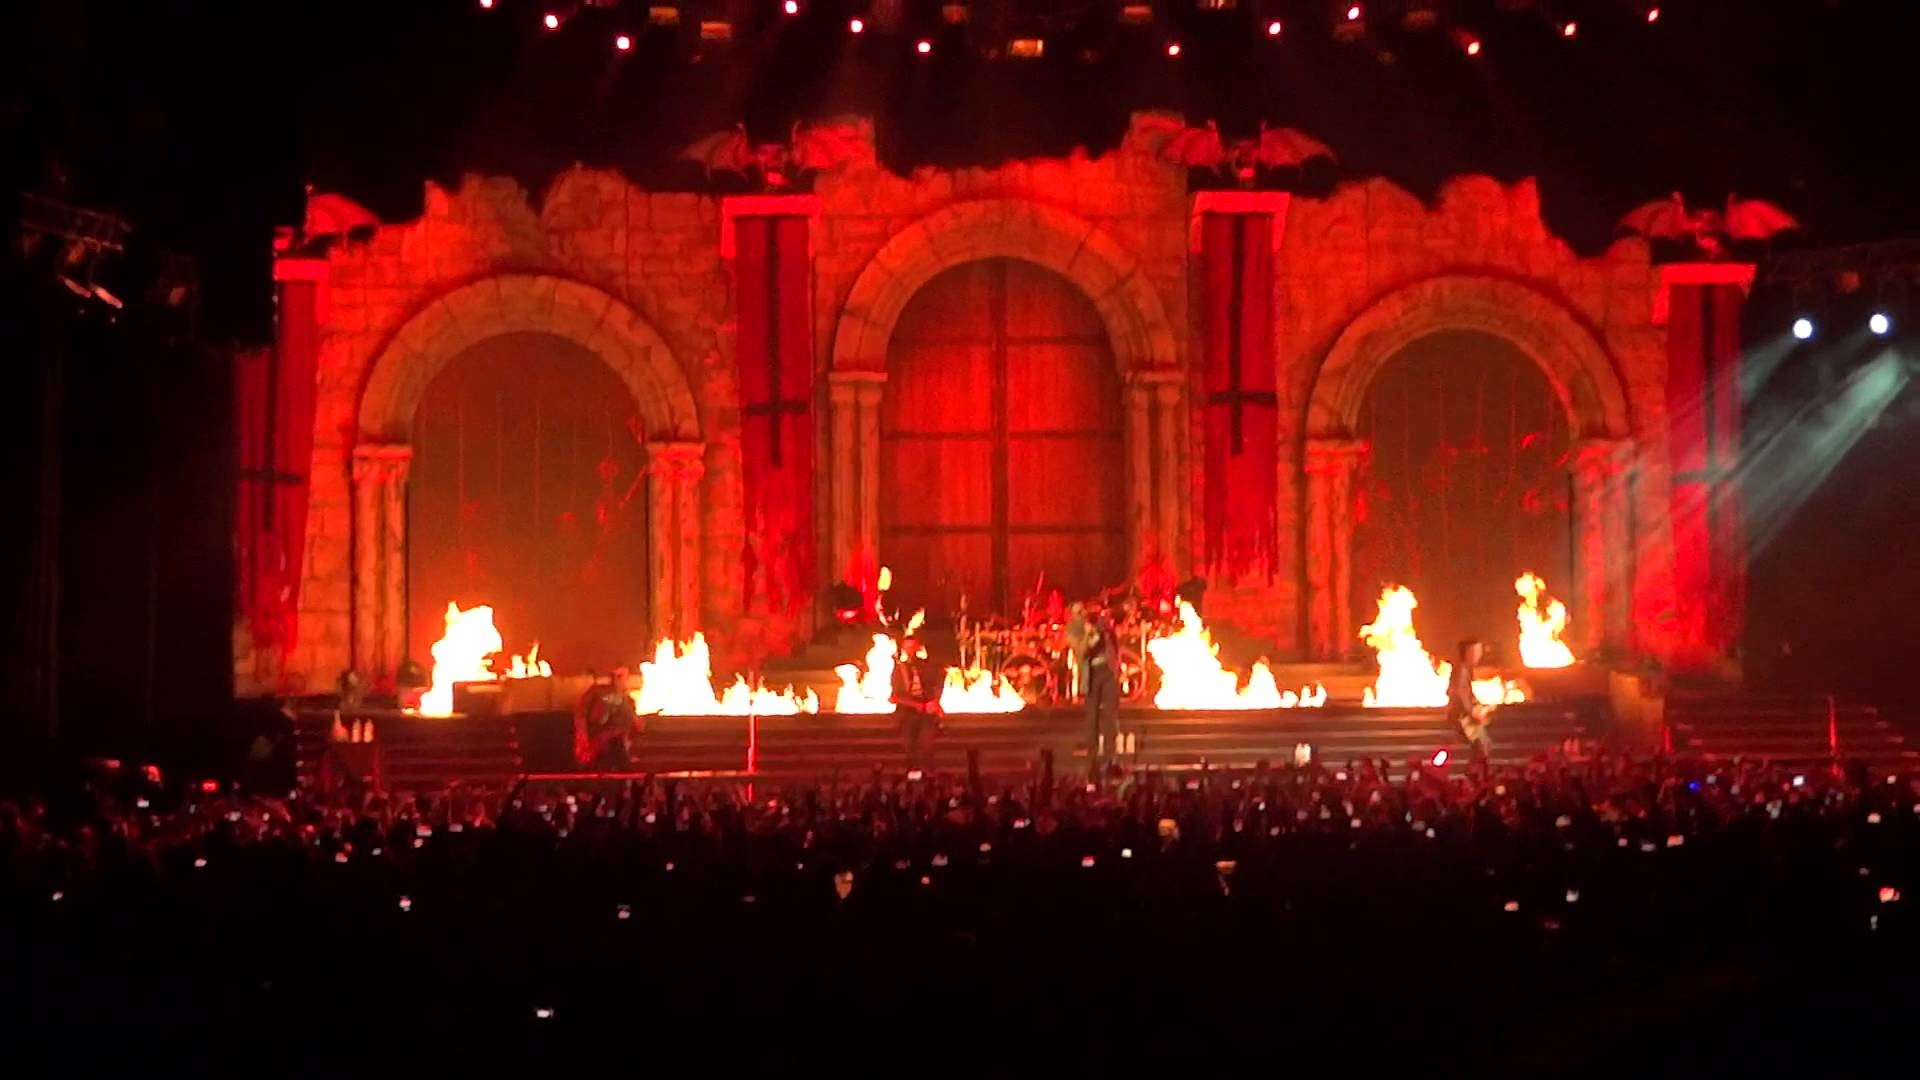 1920x1080 Avenged Sevenfold - Shepherd of Fire - 2013 Tour - Chicago, IL